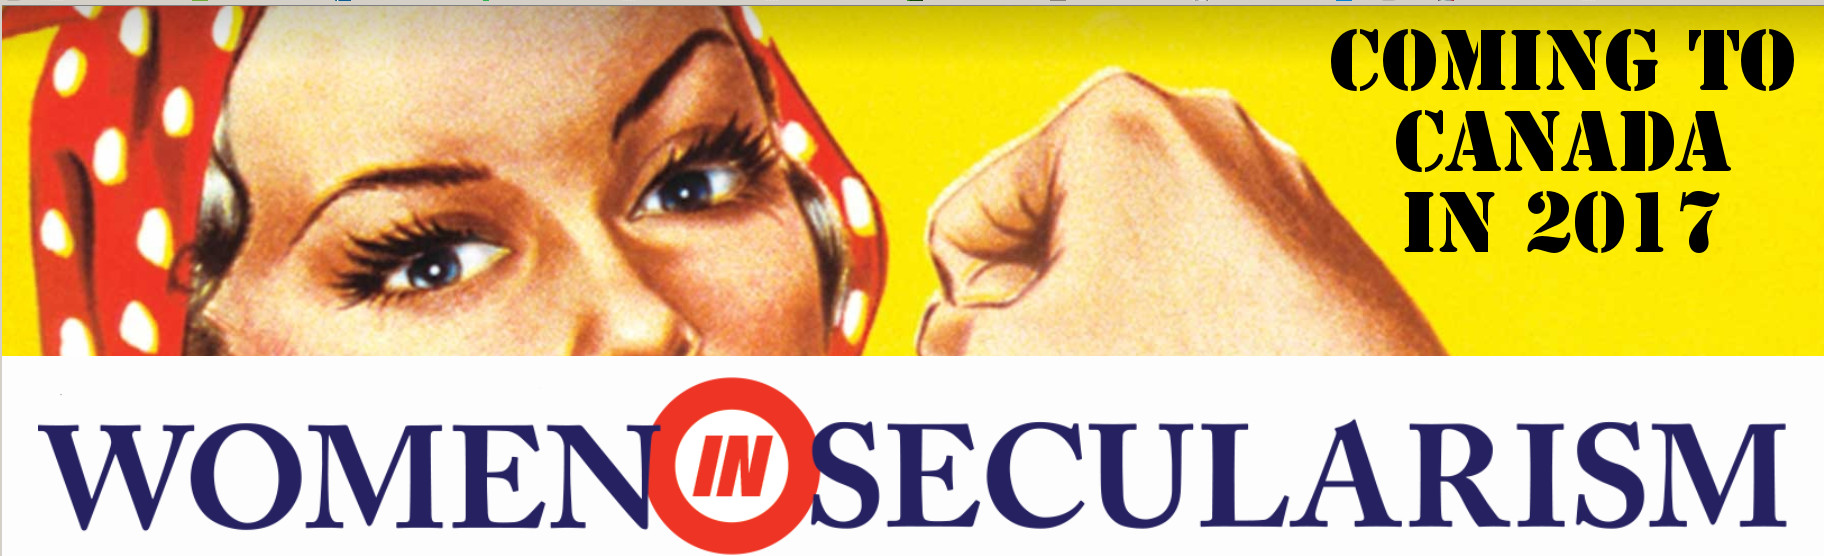 womeninsecularism_banner